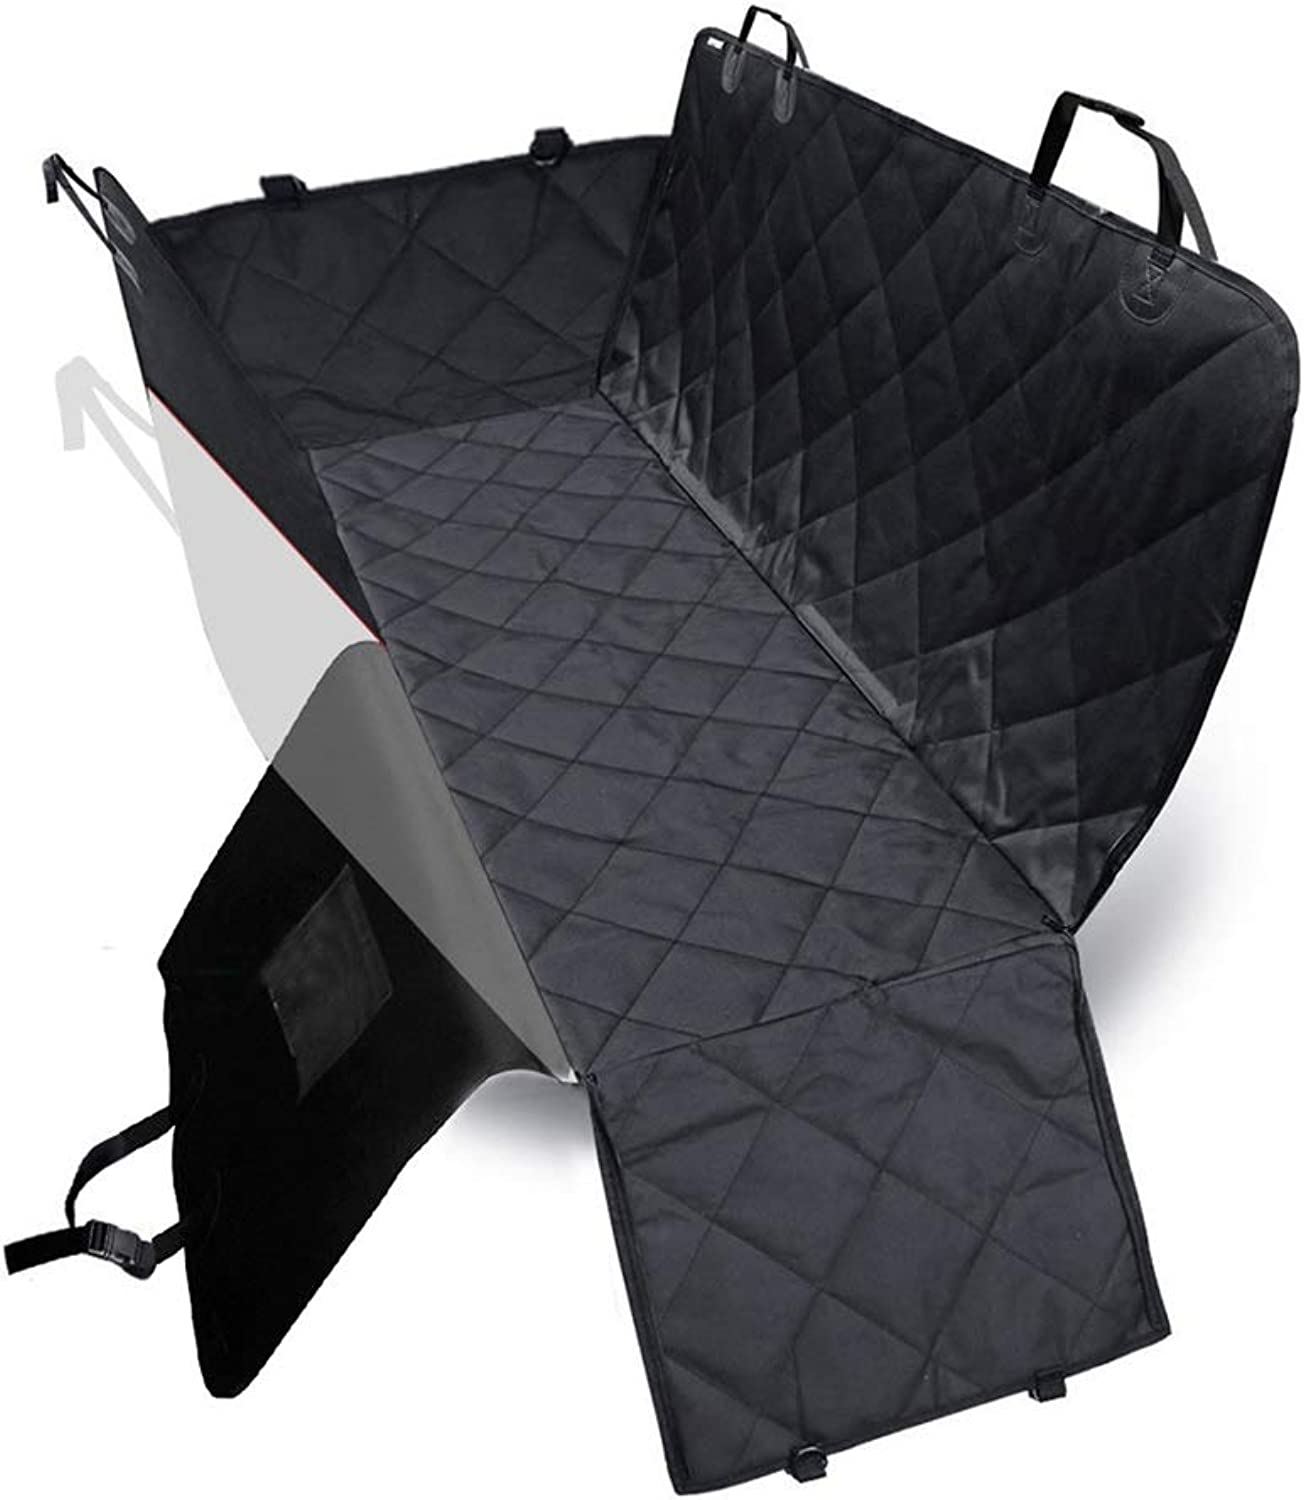 Dog Car Seat Cover Quilted Mesh Waterproof 600D Oxford Cloth Back Seat Big Ears With Zipper Middle Zipper Hammock Car Pet Pad (color   Black)